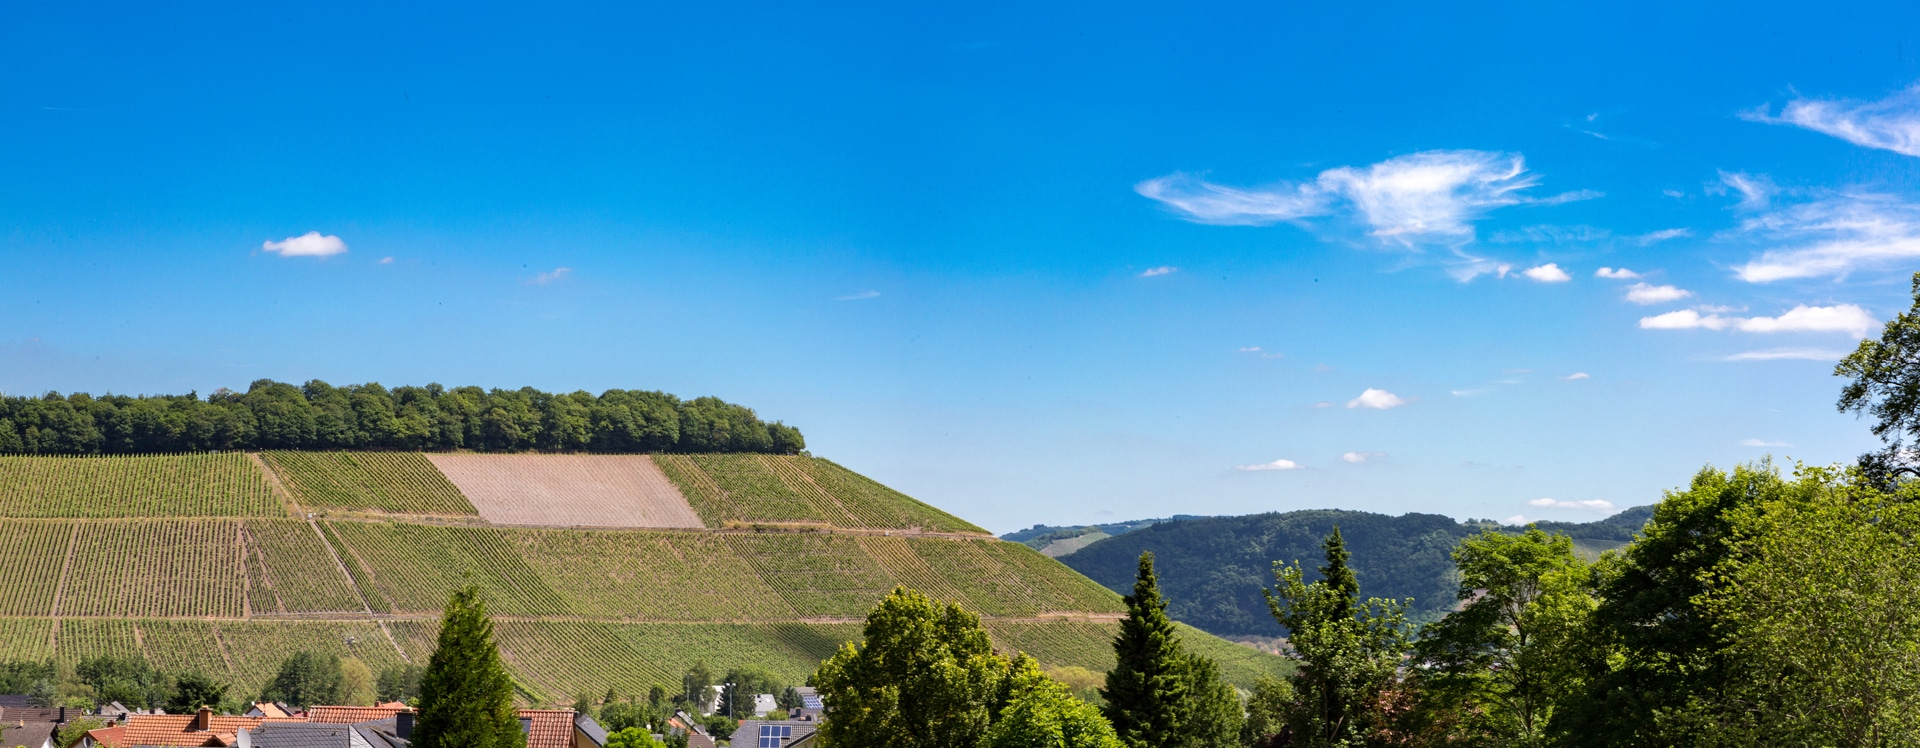 Hill with vineyards